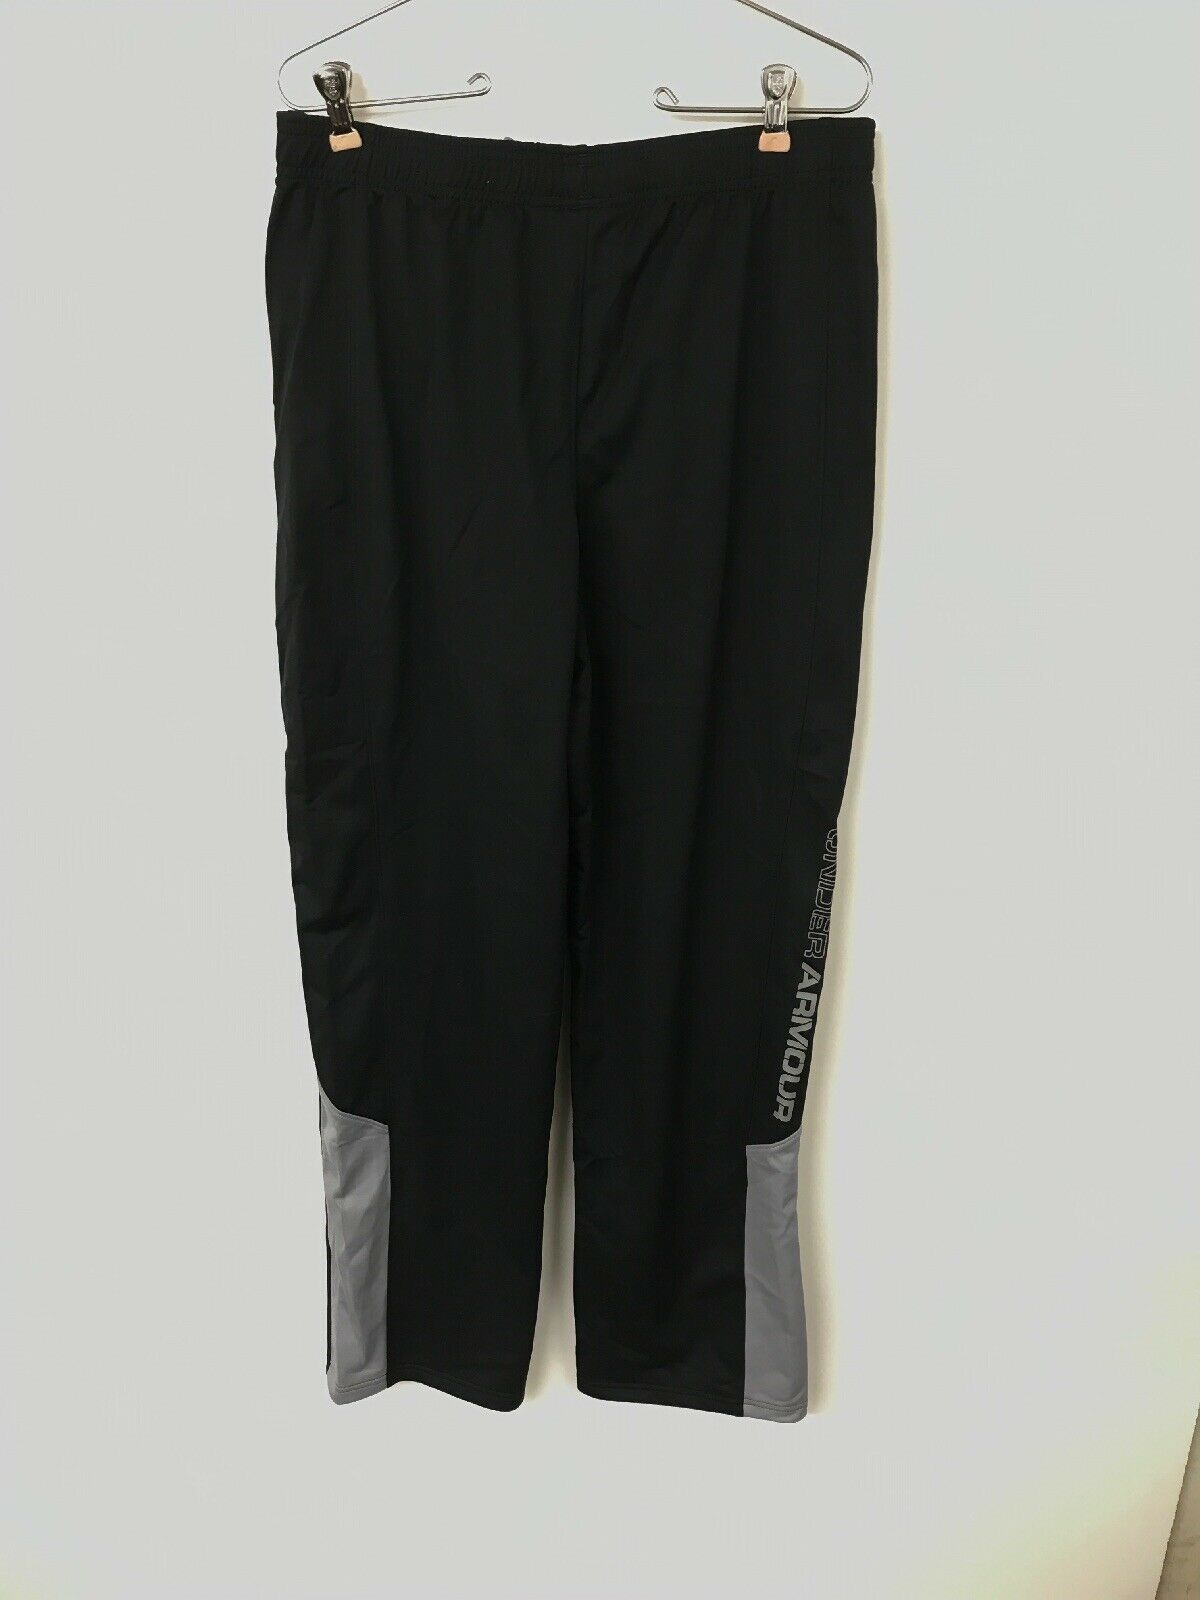 Primary image for Under Armour Youth Boys Sweat Pants Black XL